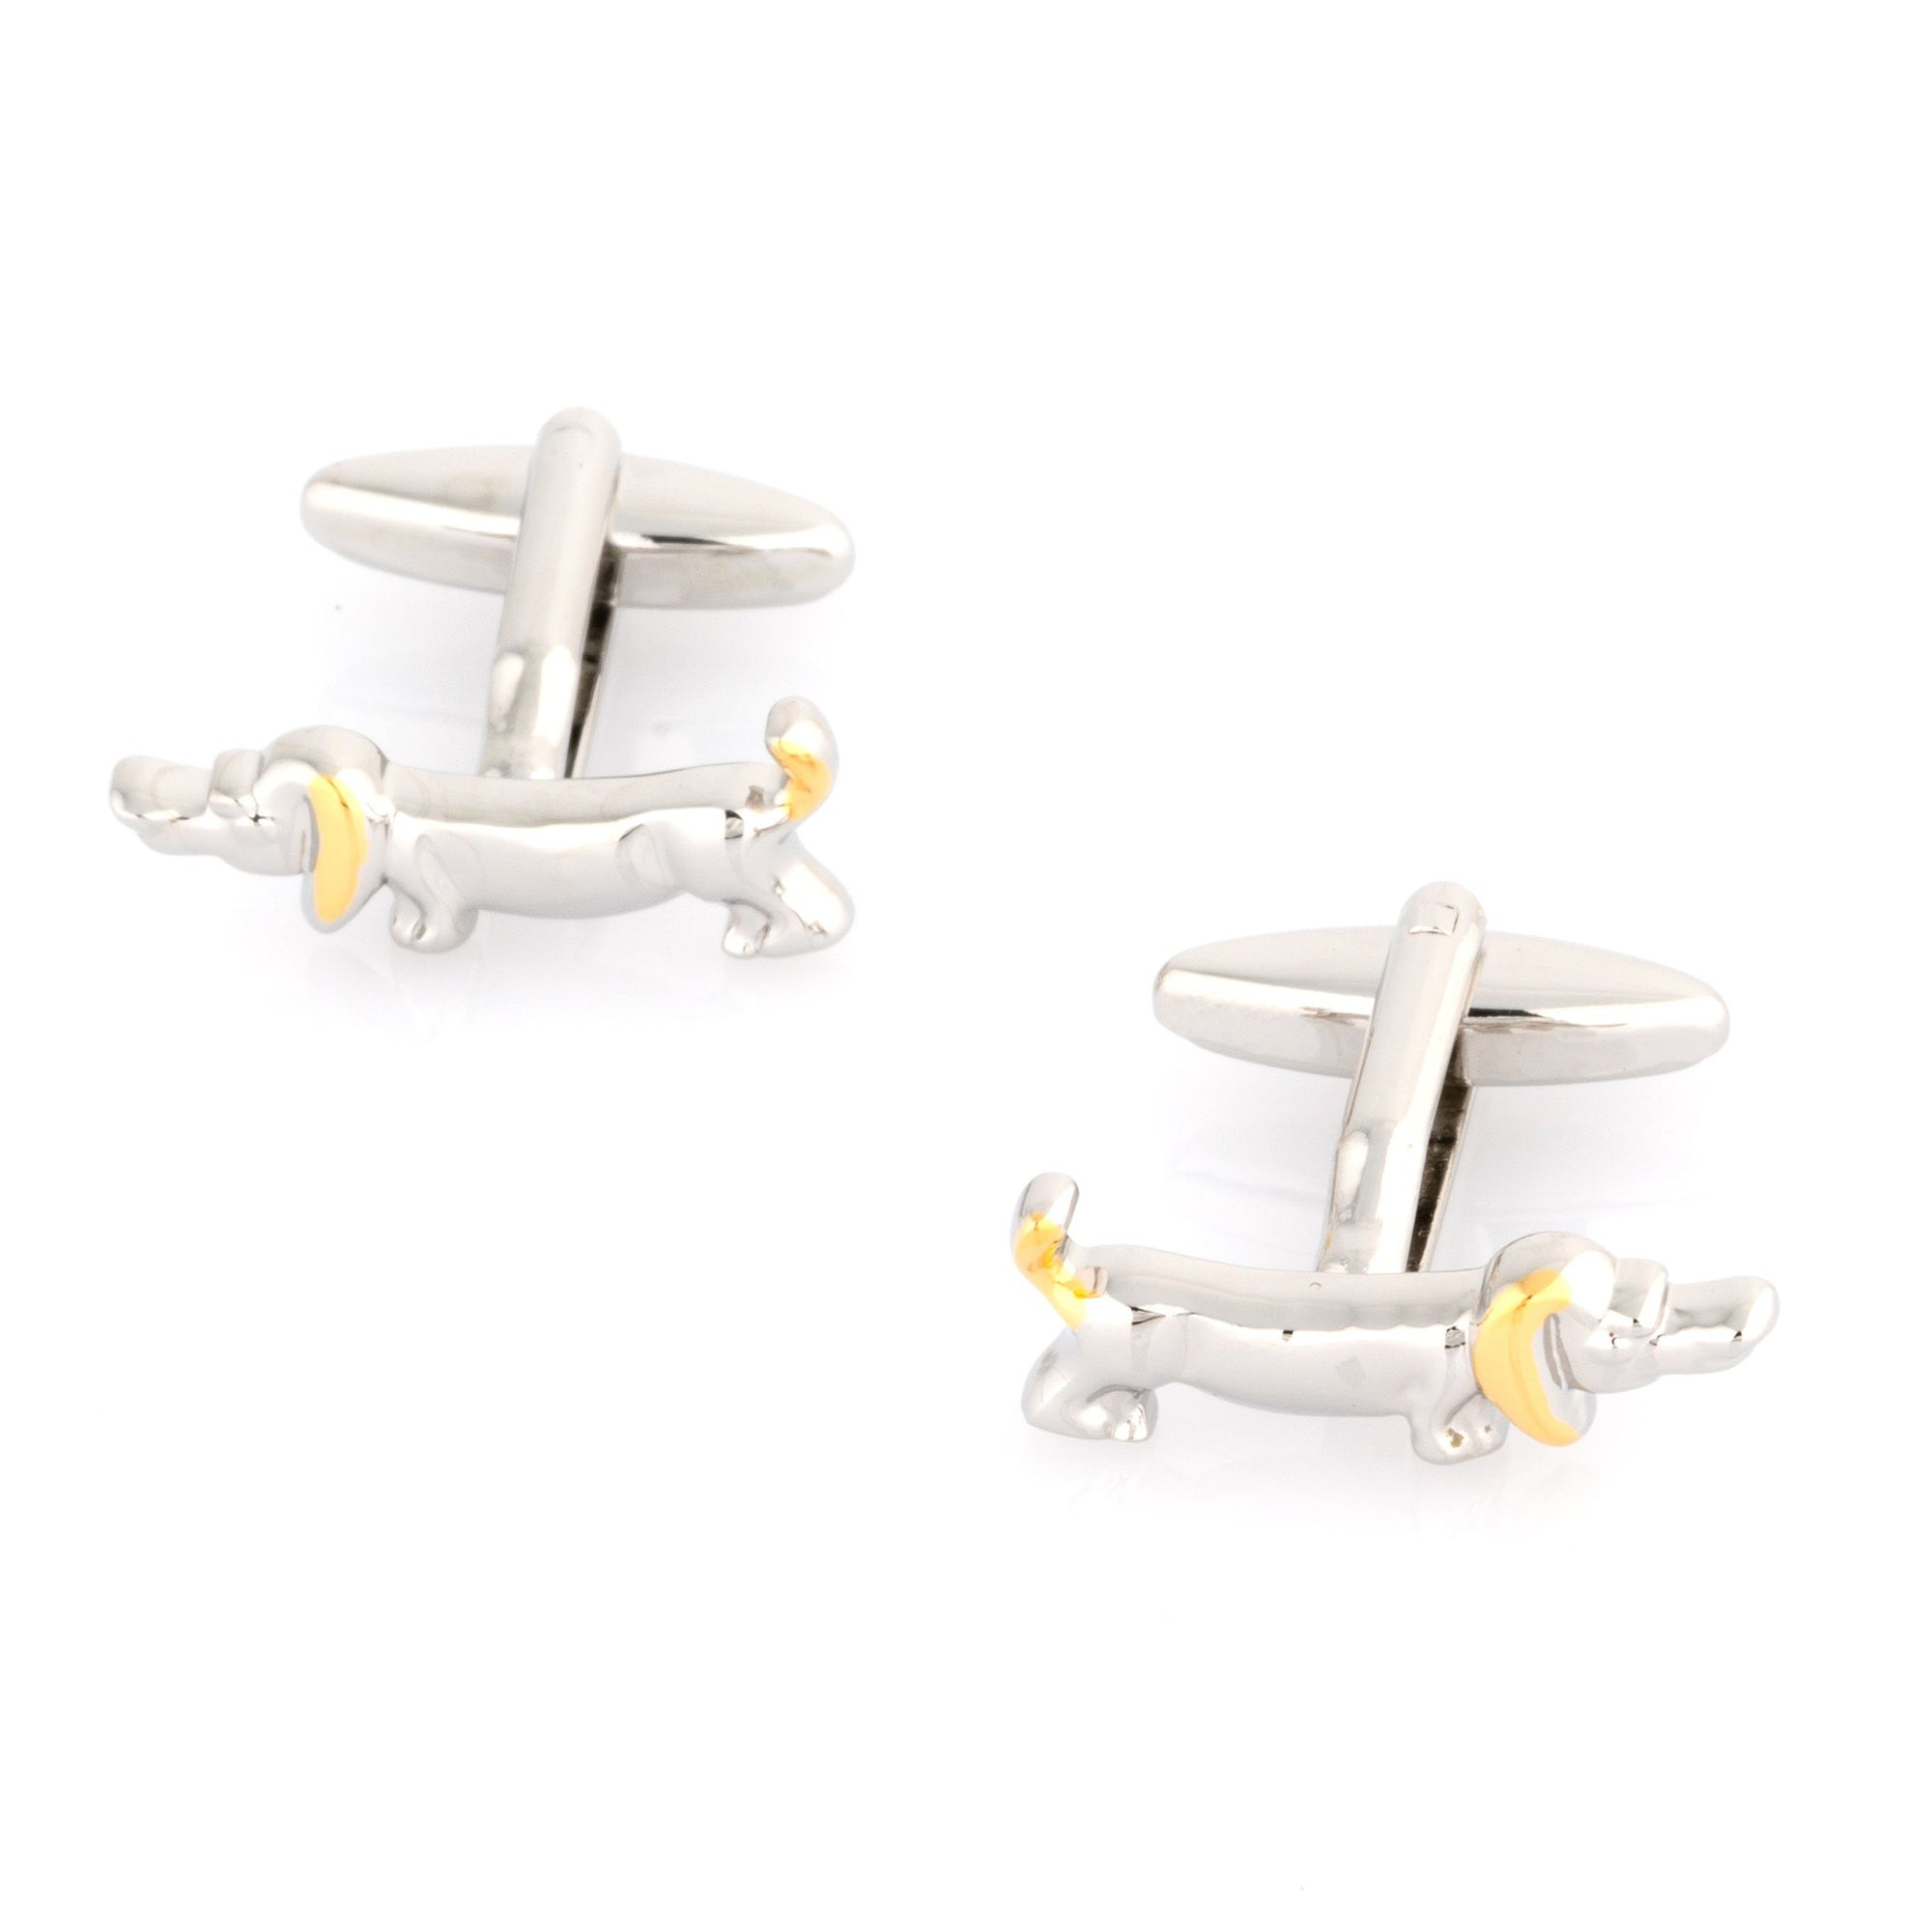 Sausage Dog Cufflinks in Gold and Silver Novelty Cufflinks Clinks Australia Sausage Dog Cufflinks in Gold and Silver